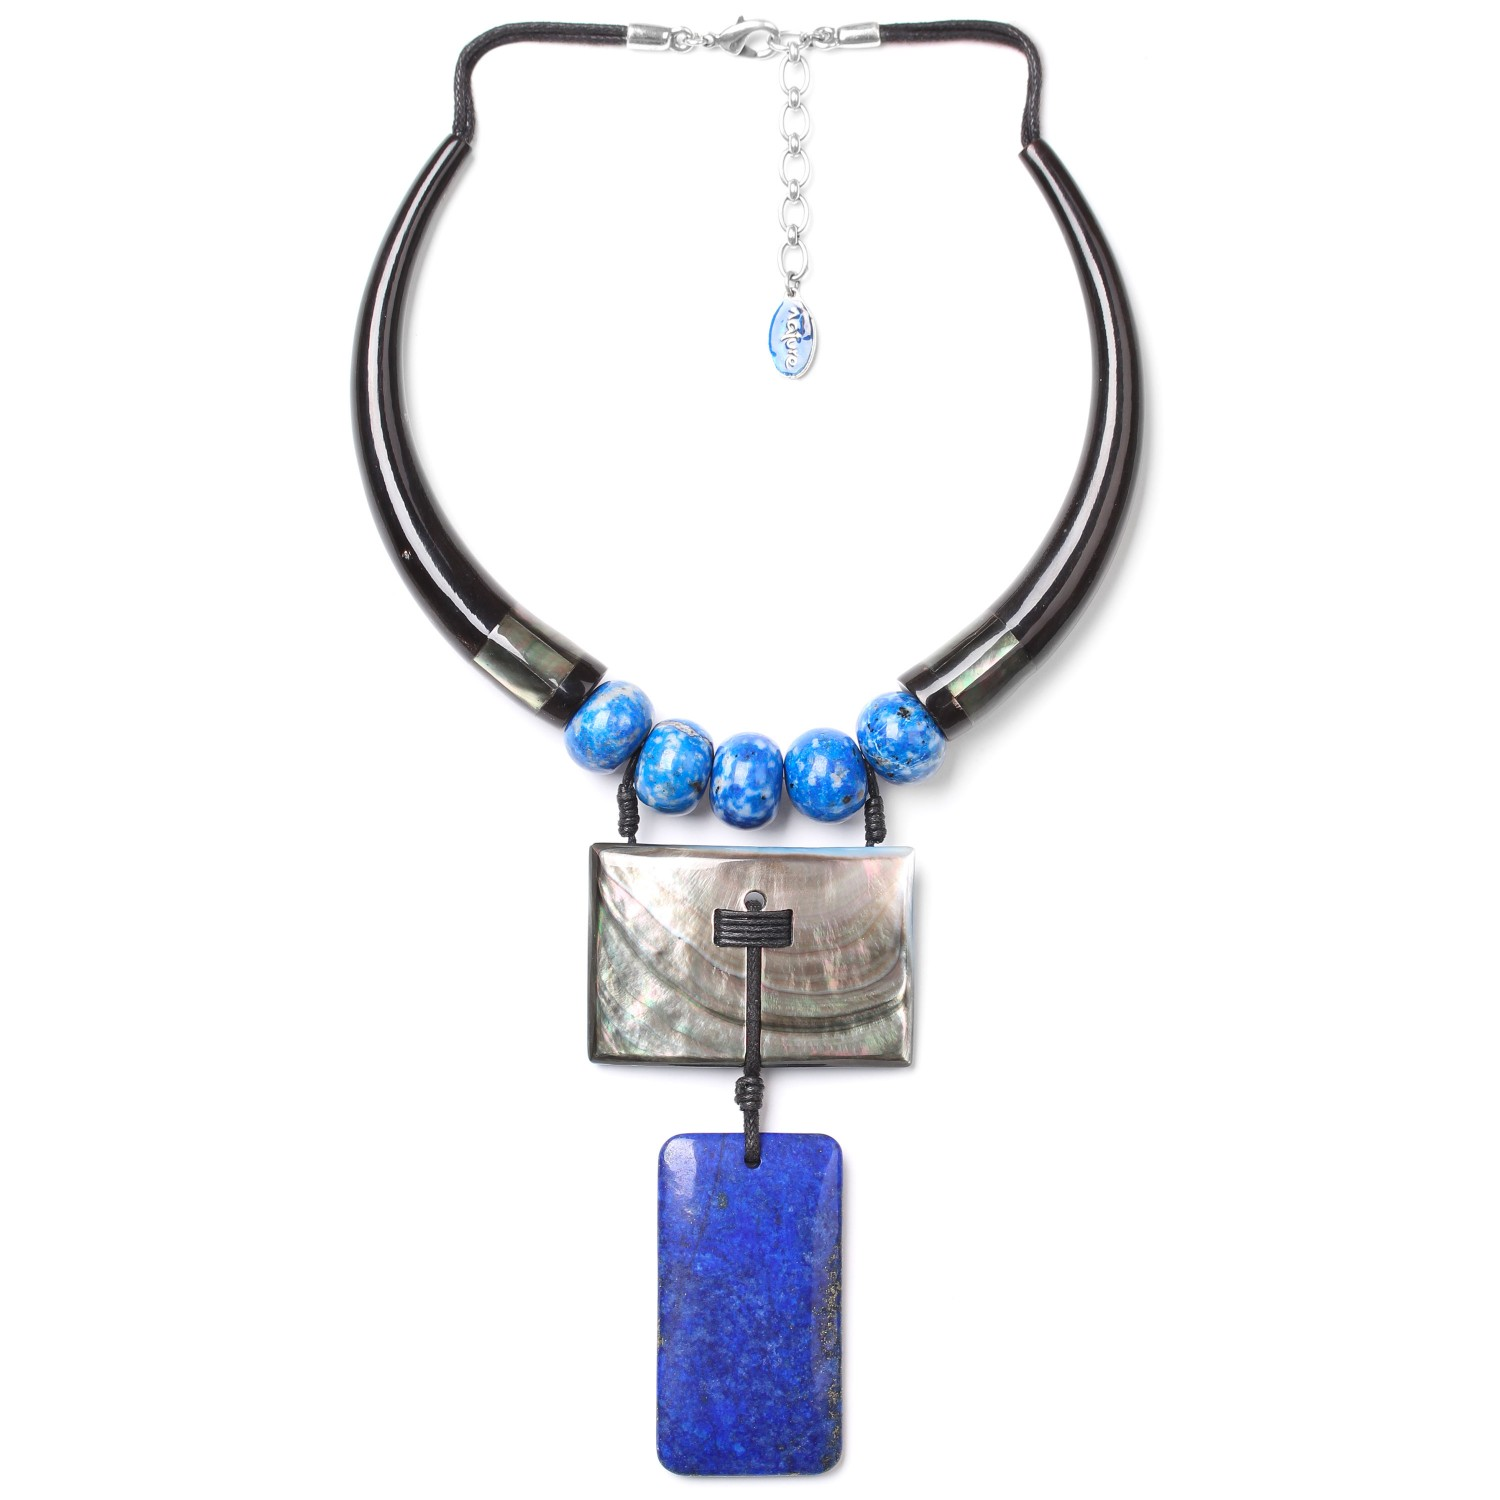 DEEP BLUE The necklace